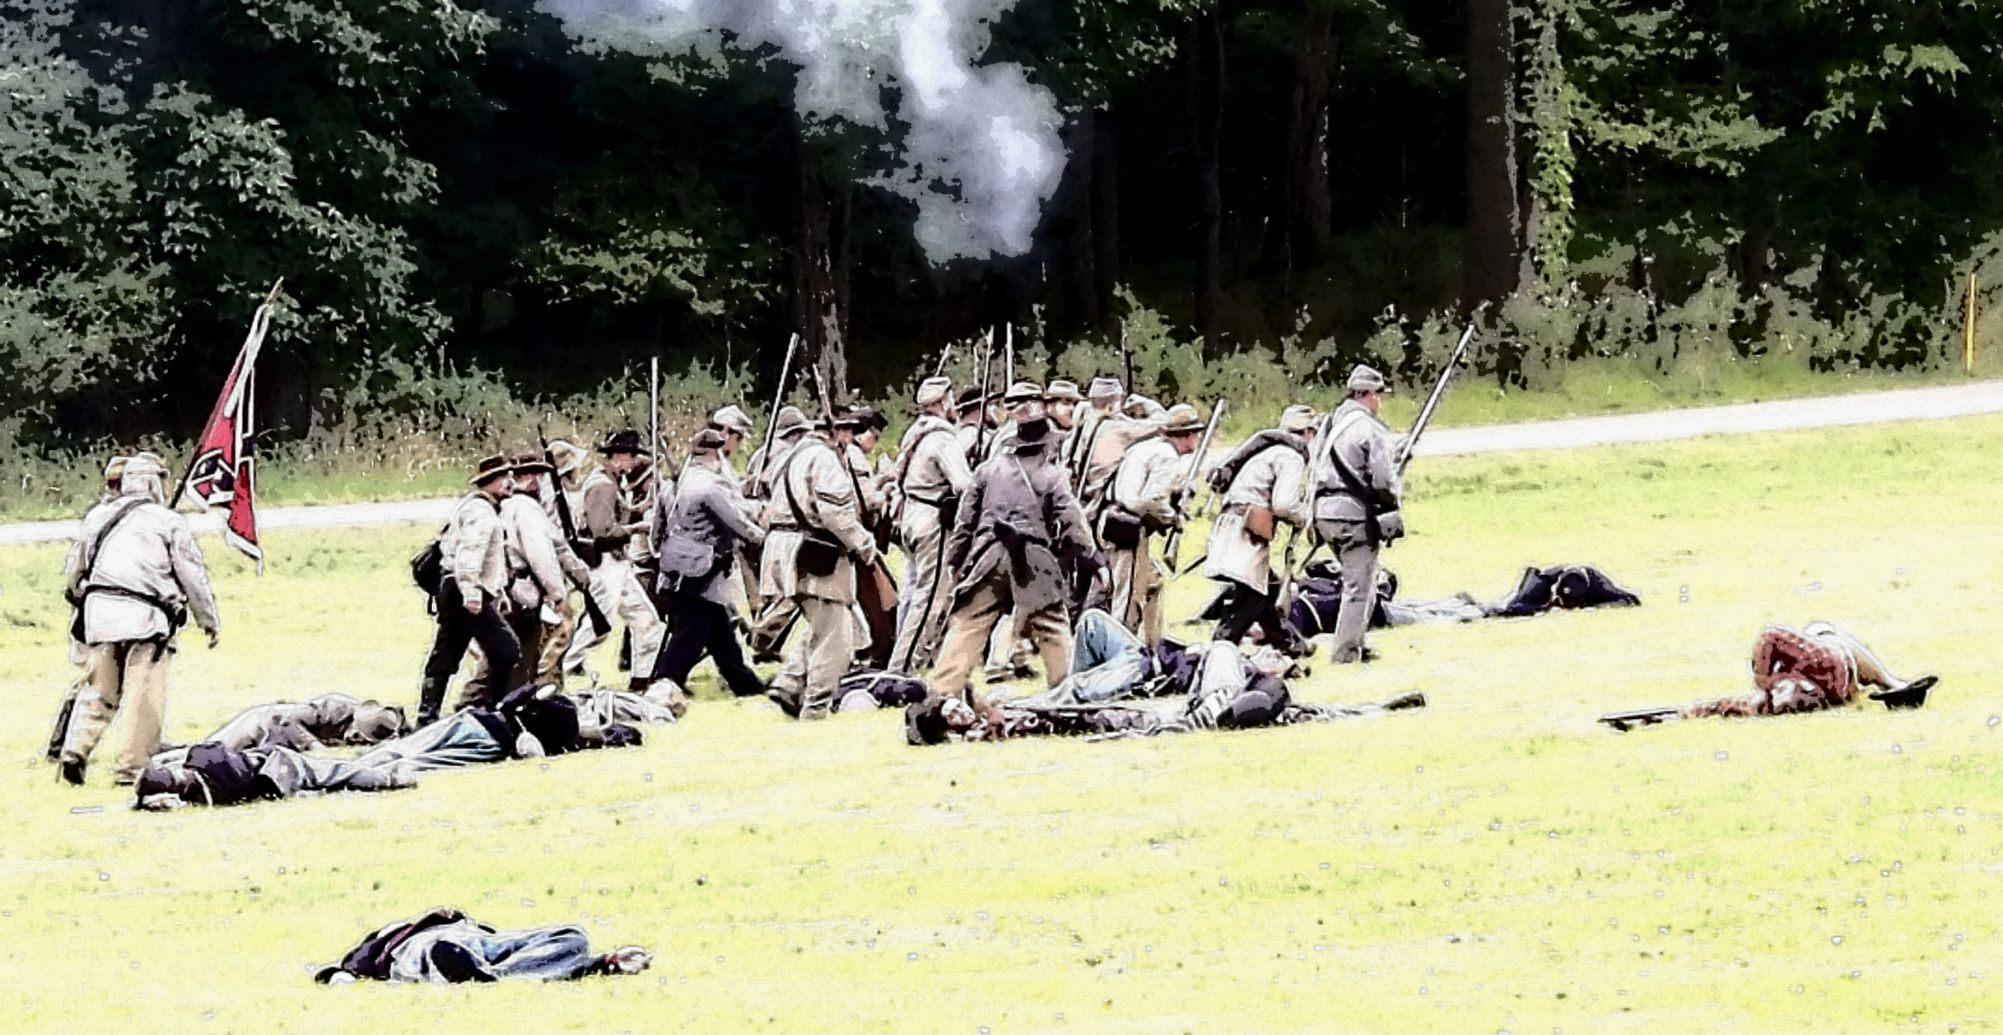 Civil War re-enactment slated for June 29 at Unger Park